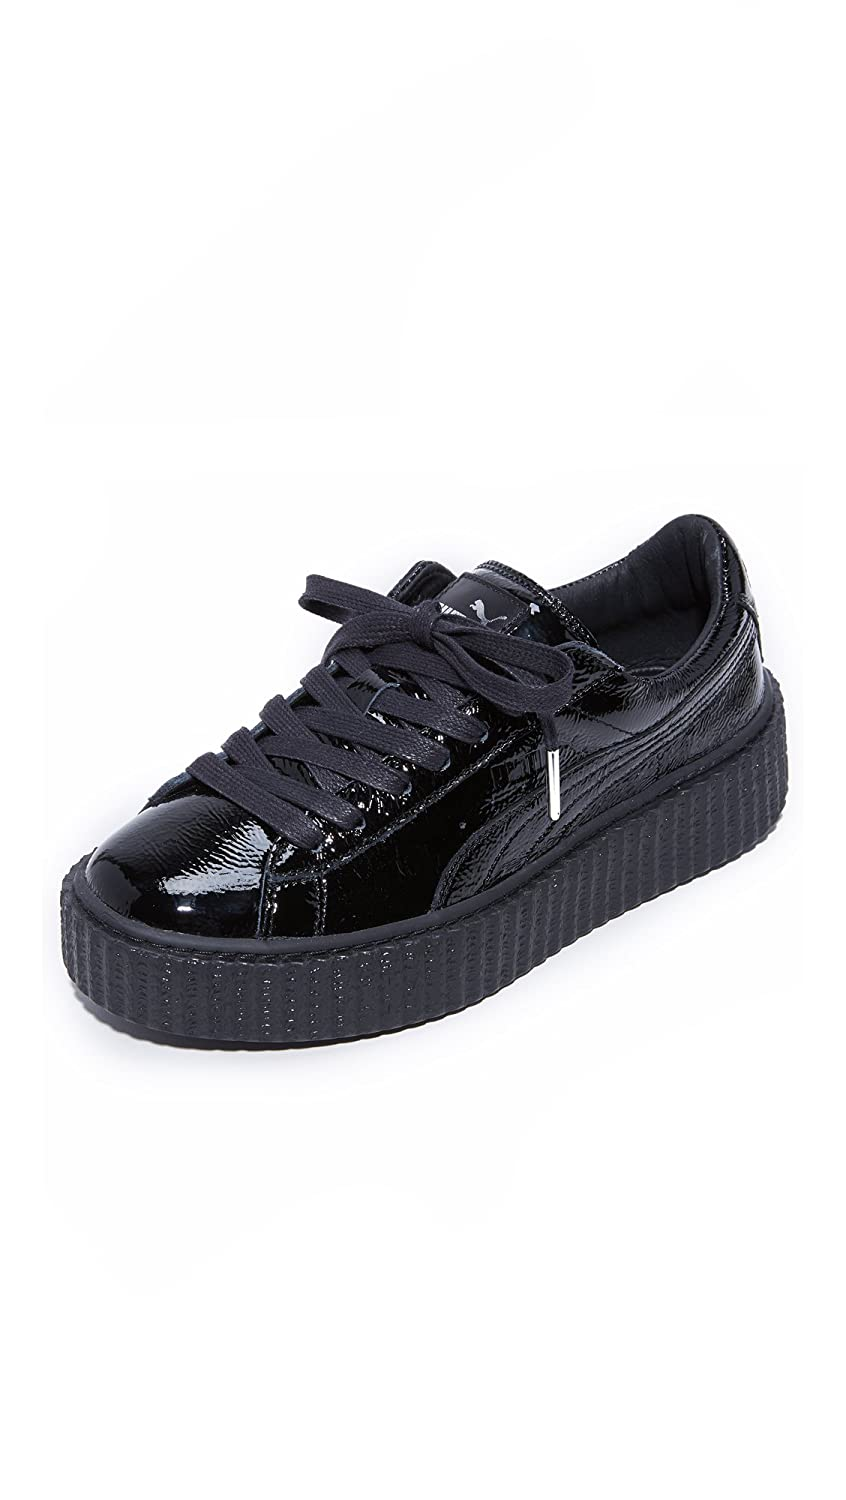 Puma Women/'s Creeper Wrinkled Patent Ankle-High Leather Fashion Sneaker